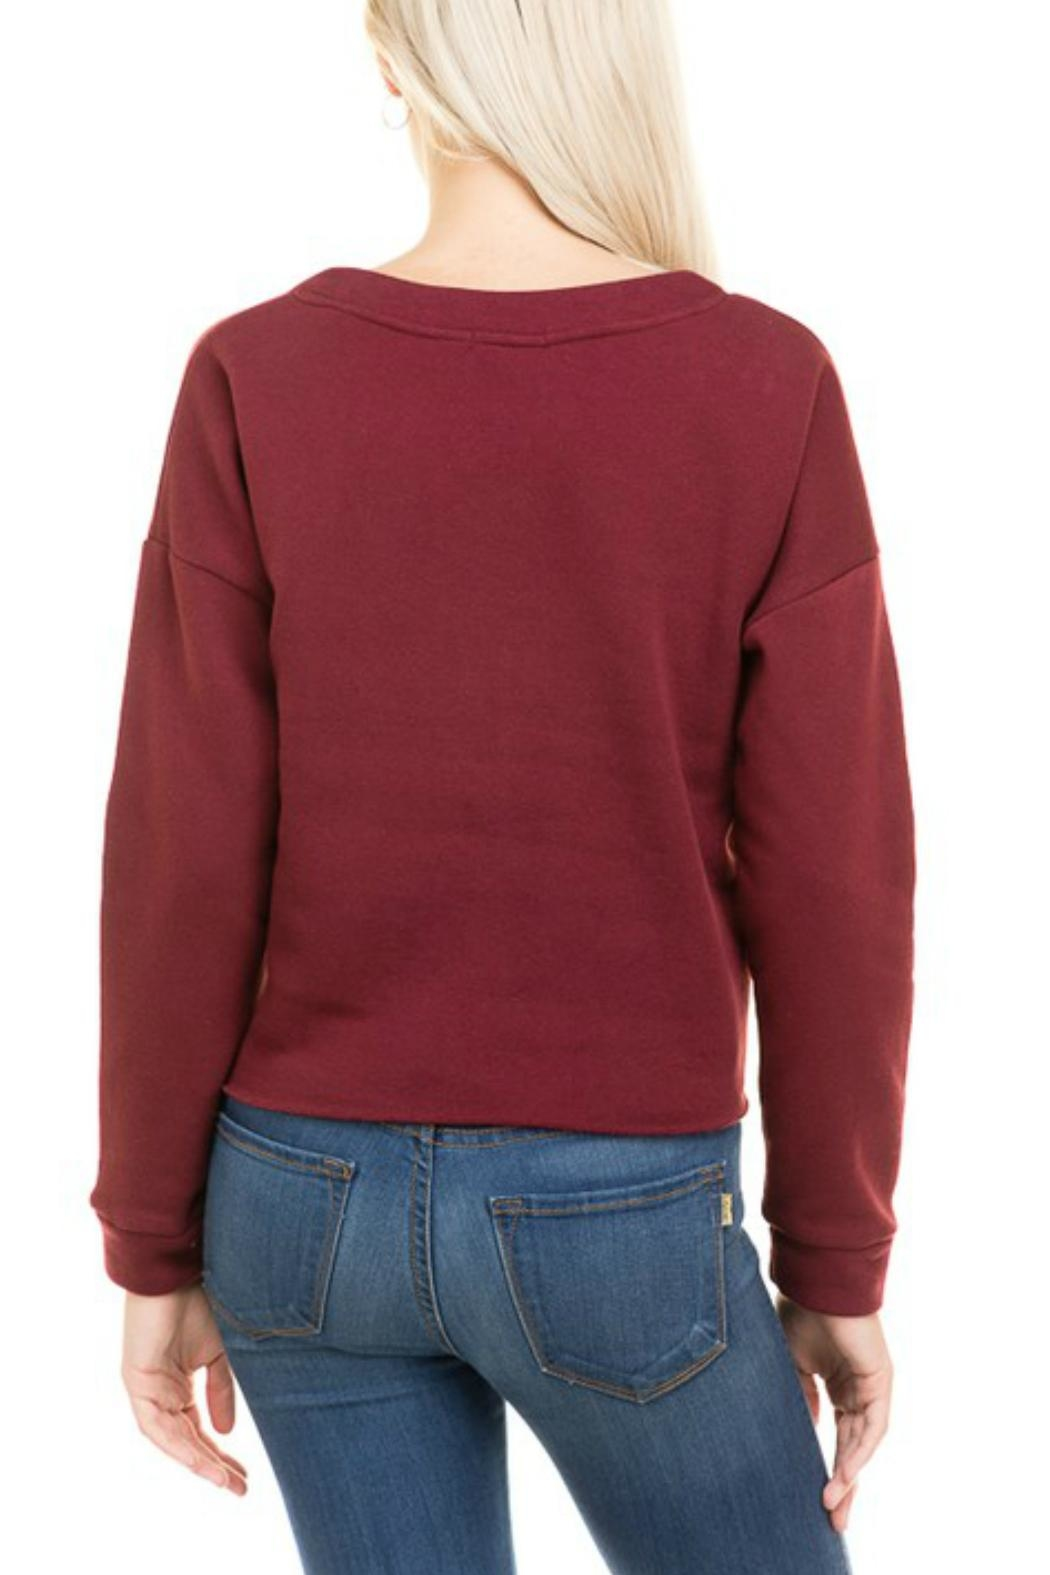 Minx Burgundy Laceup Sweater - Side Cropped Image